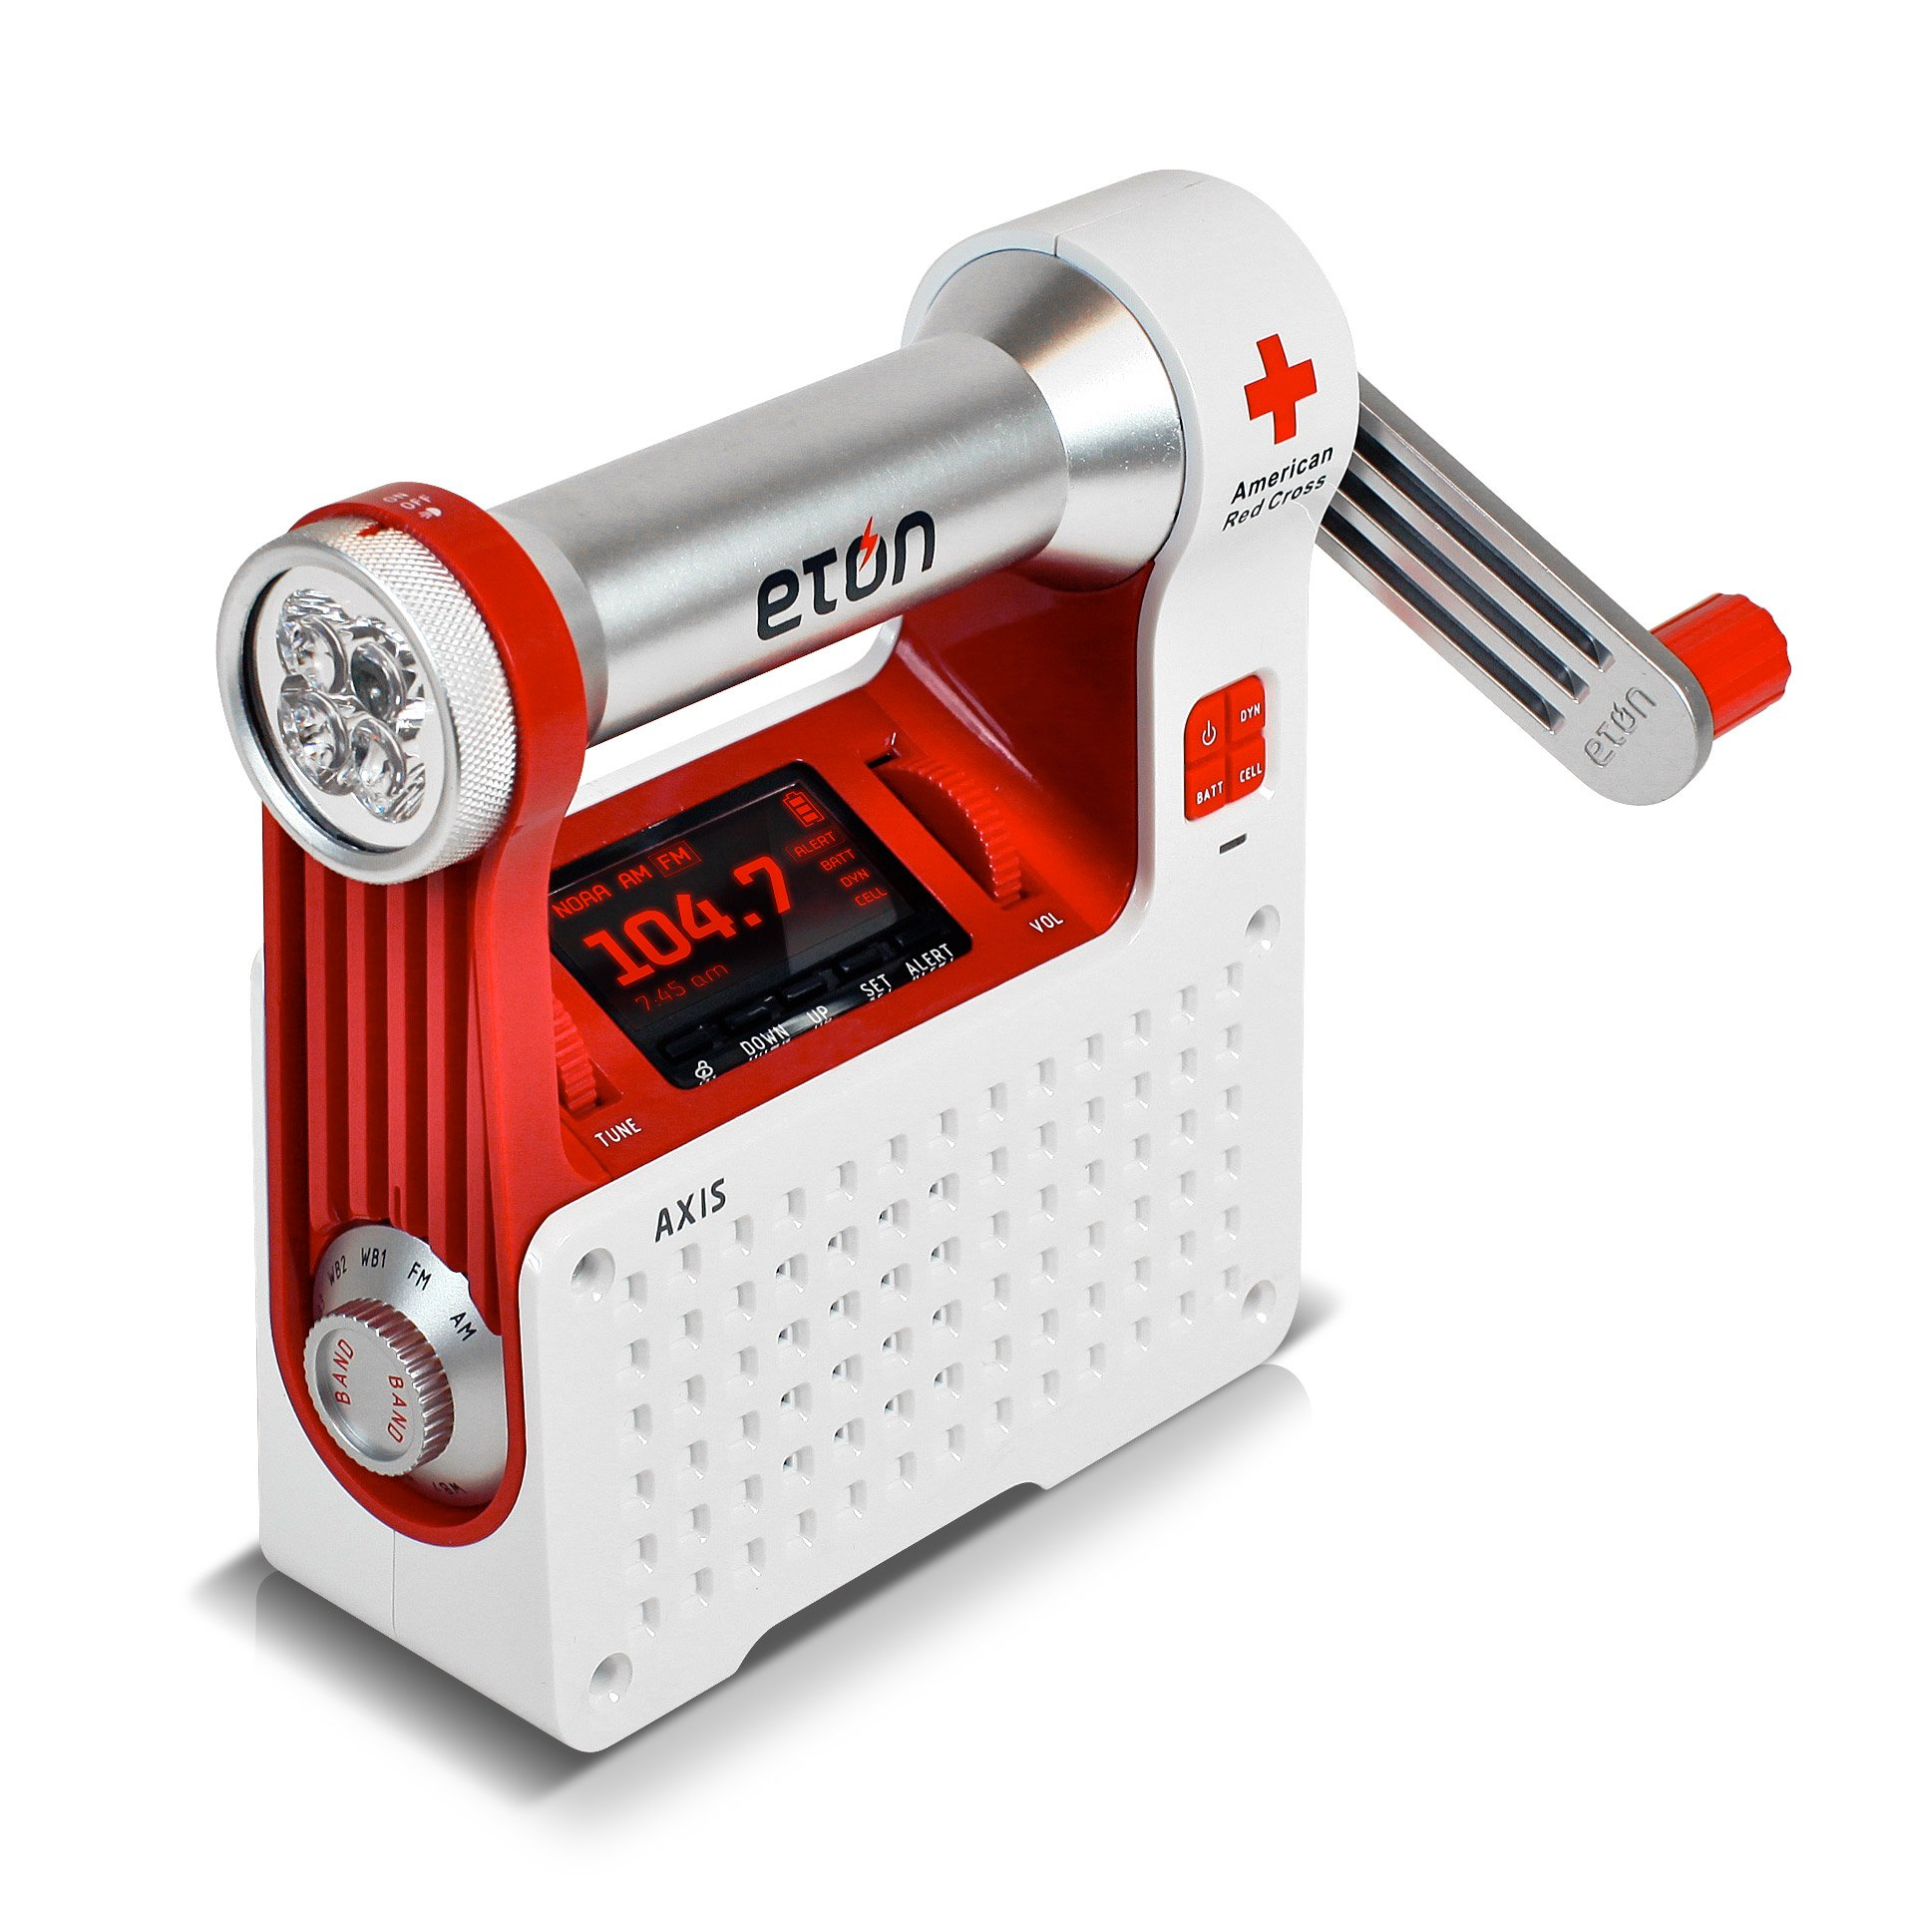 The American Red Cross Axis Self-Powered Safety Hub with Weather Radio and USB Cell Phone Charger, ARCPT300W